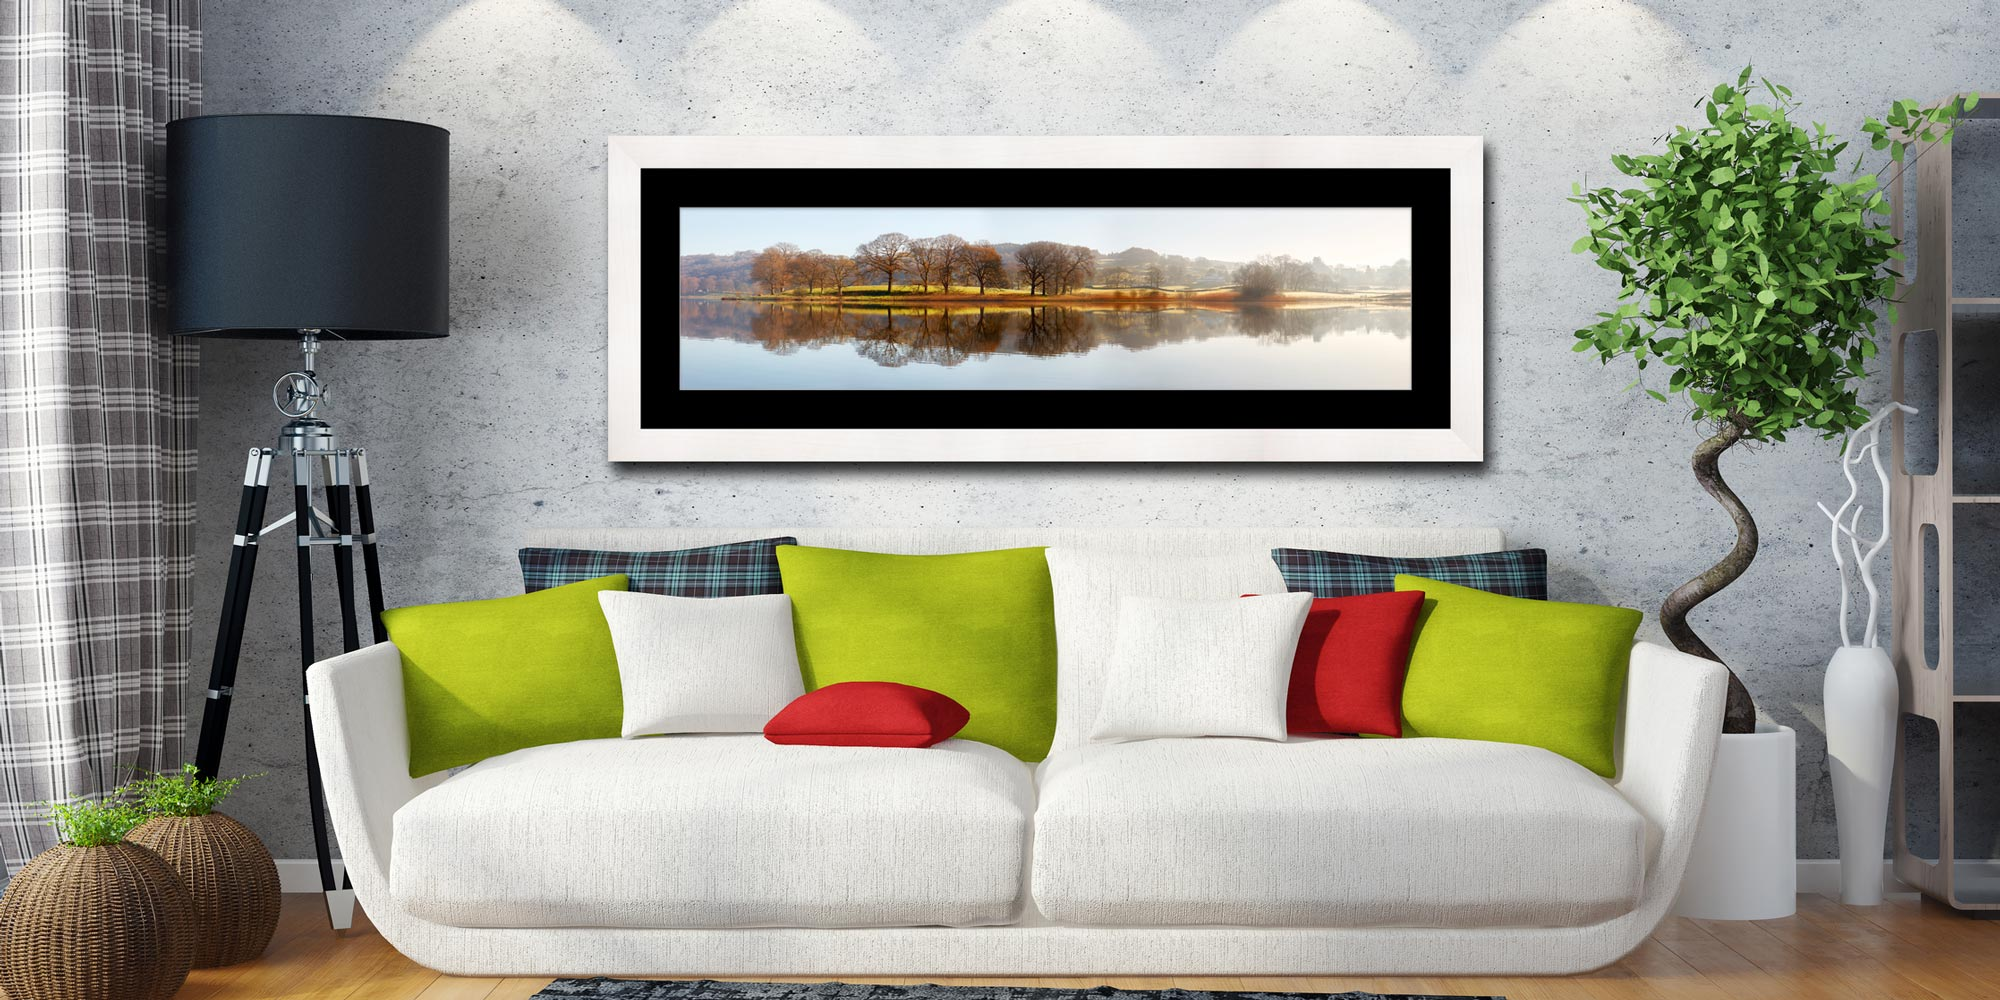 Misty Morning at Esthwaite Water - Framed Print with Mount on Wall